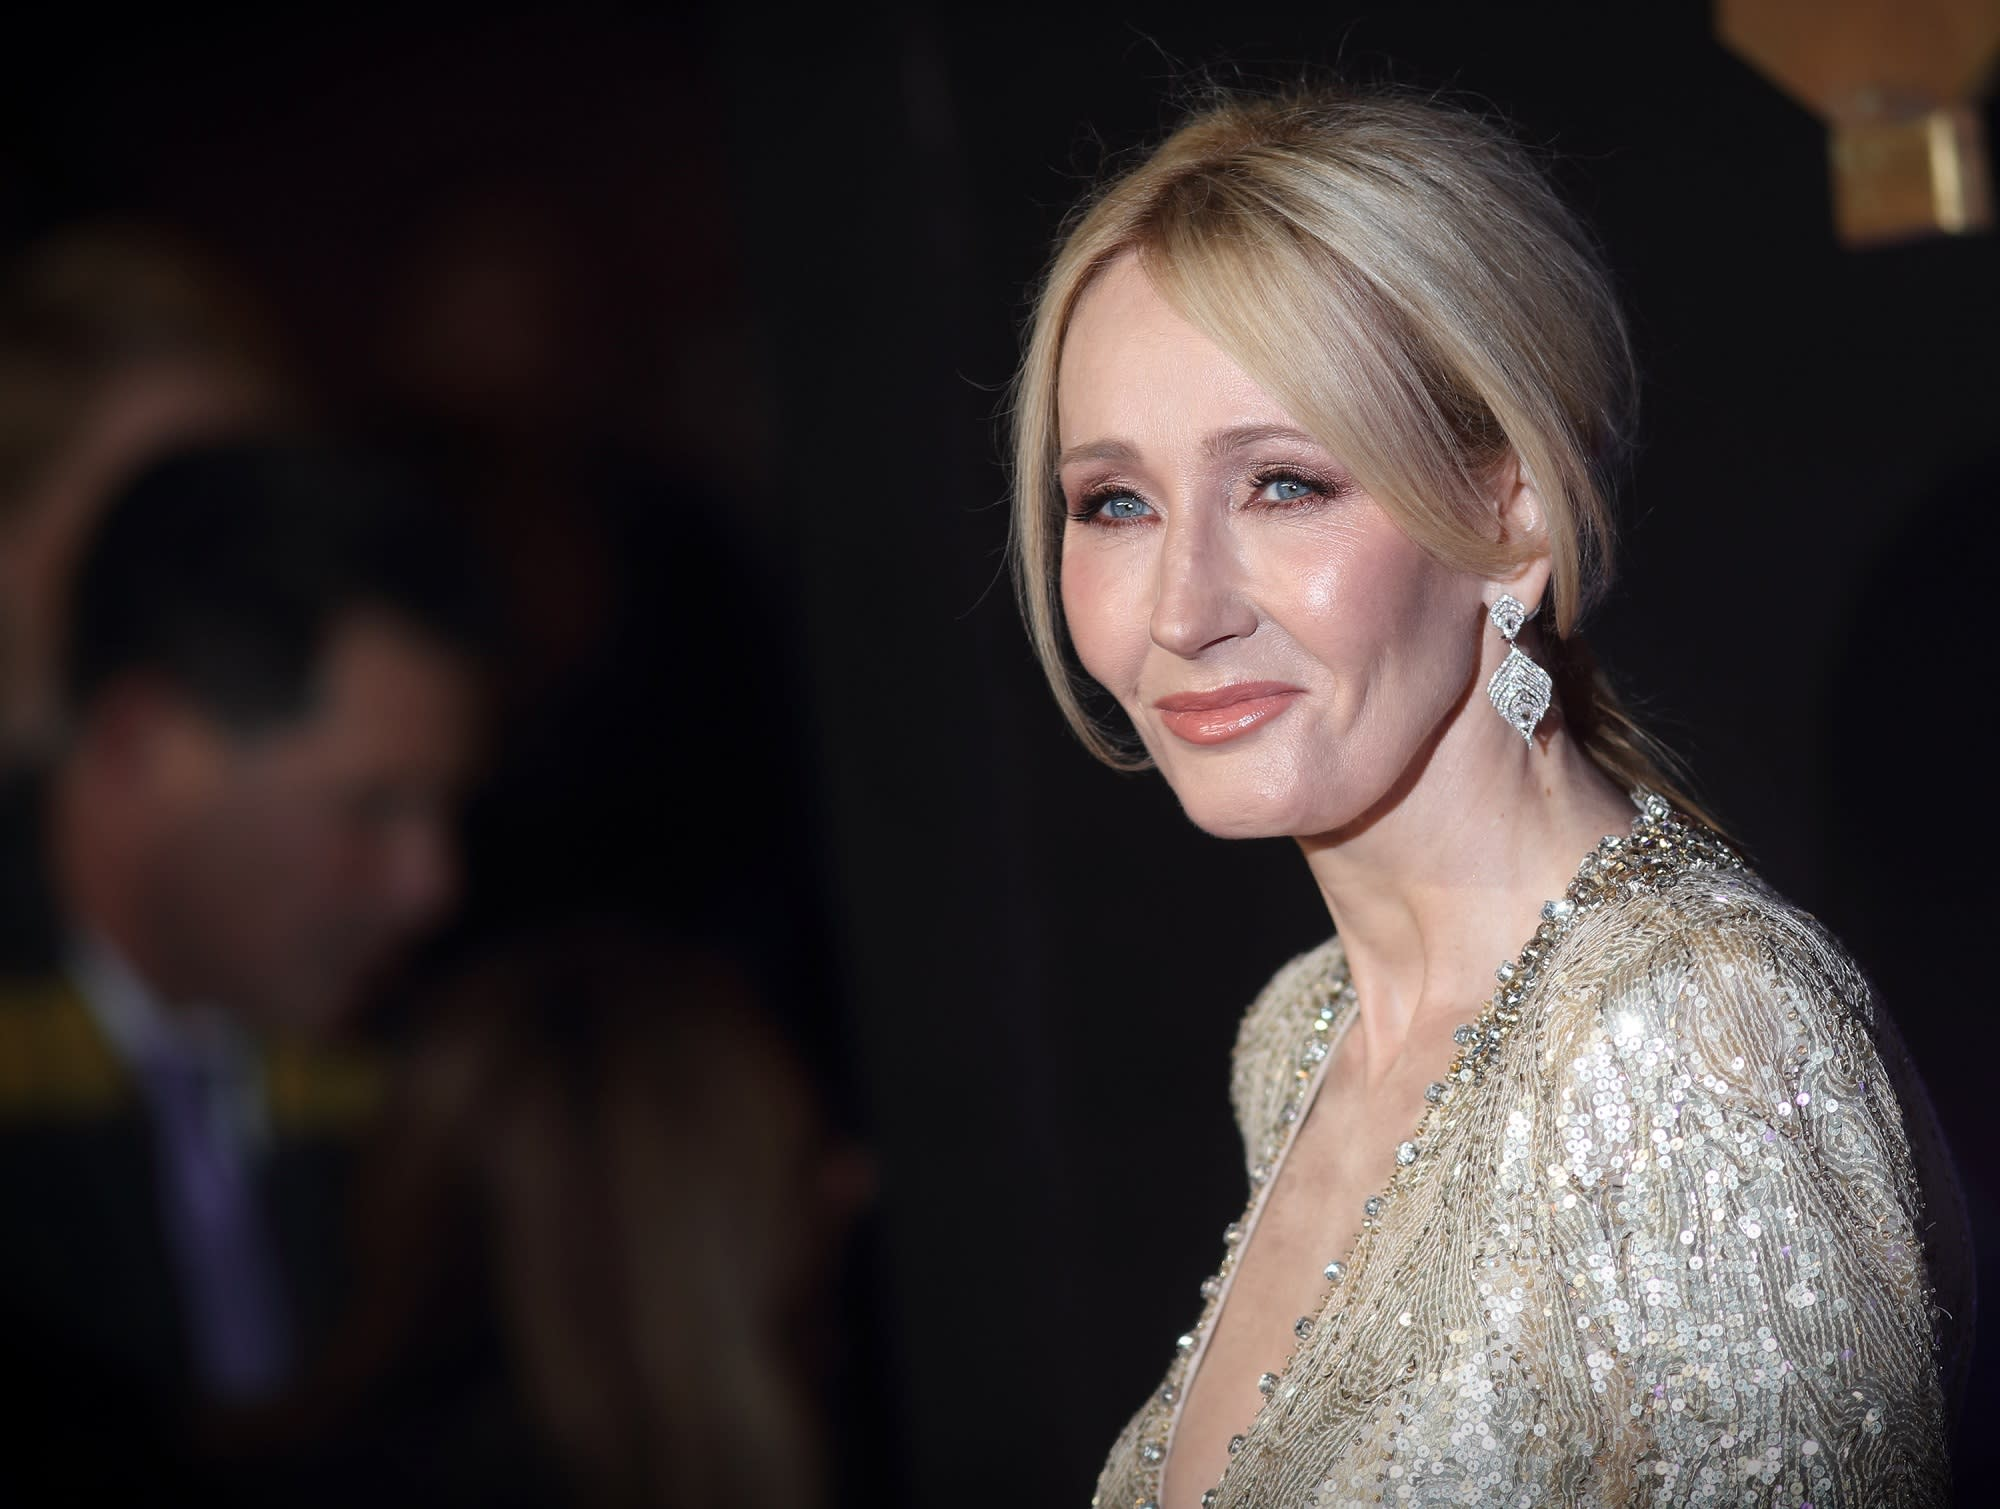 Harry Potter Author Jk Rowling Reveals Writing Routine On Twitter